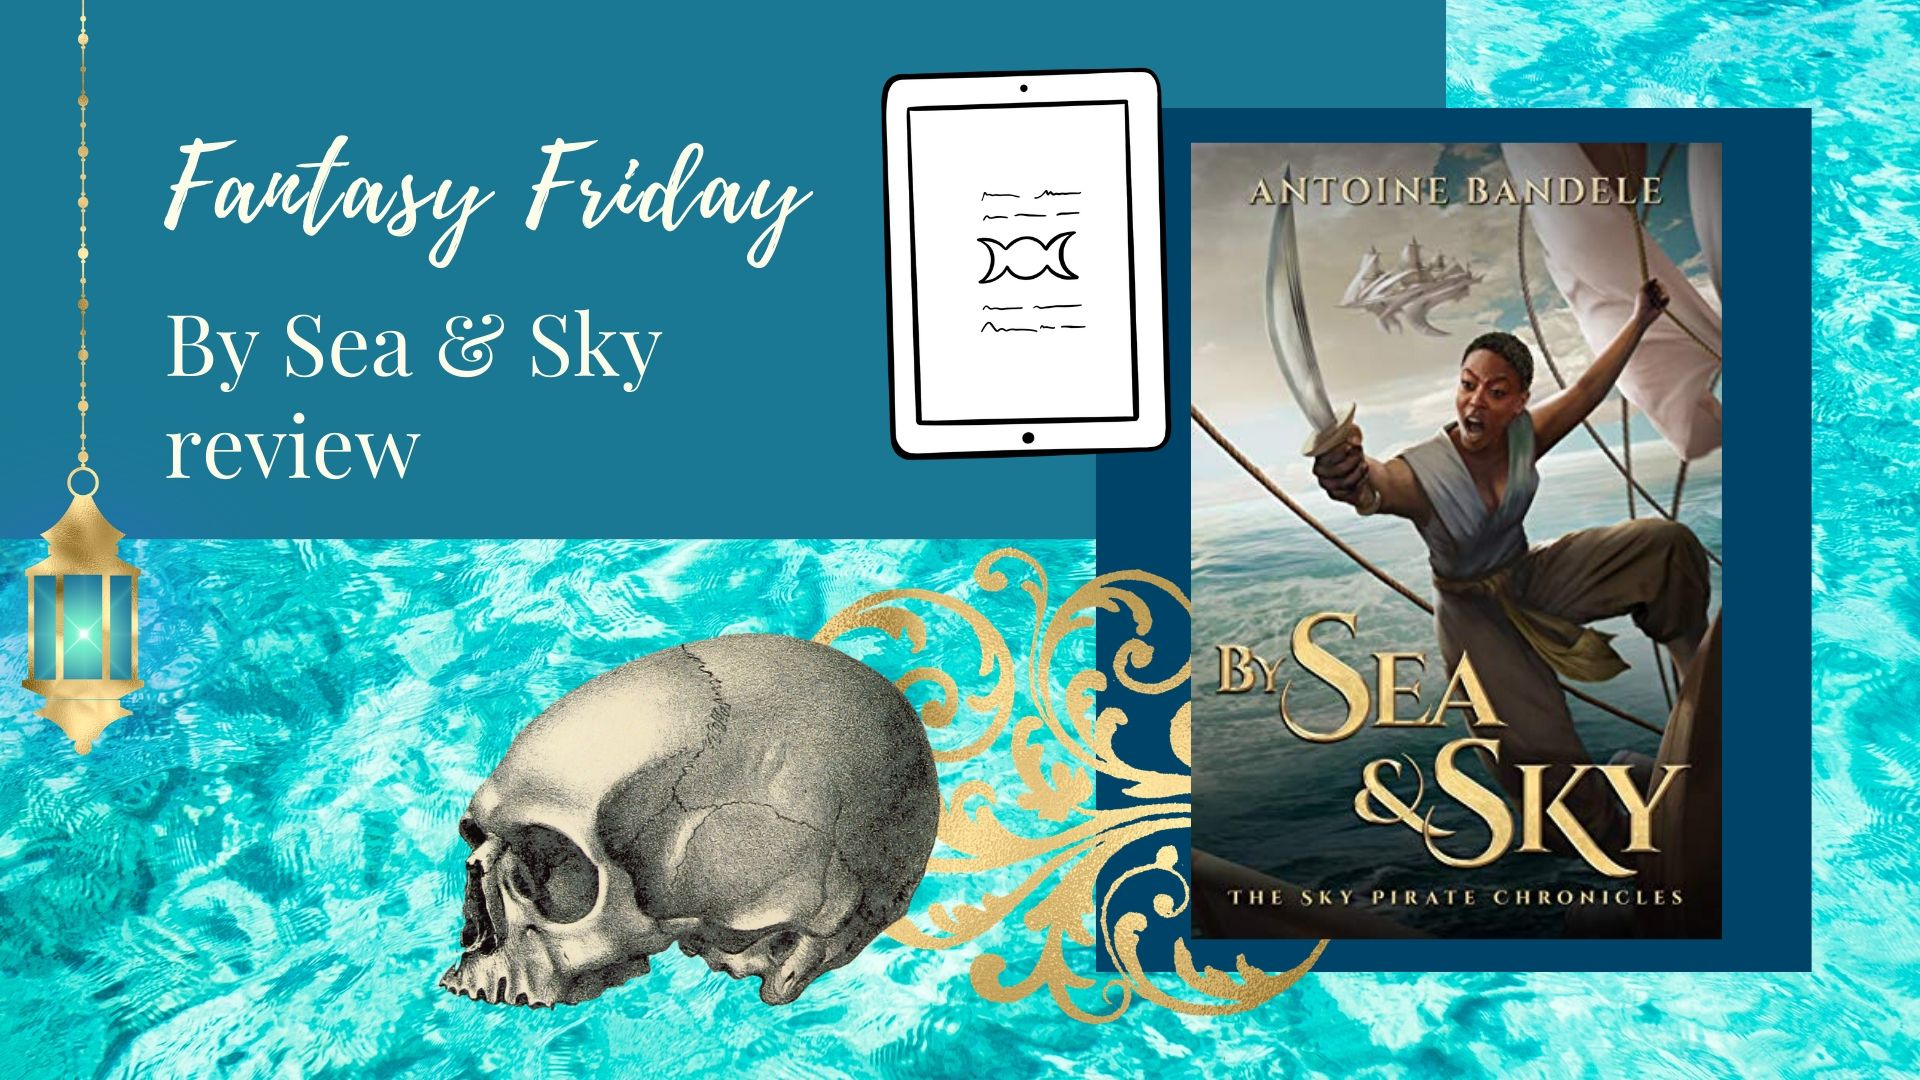 Fantasy Friday: By Sea & Sky by Antoine Bandele